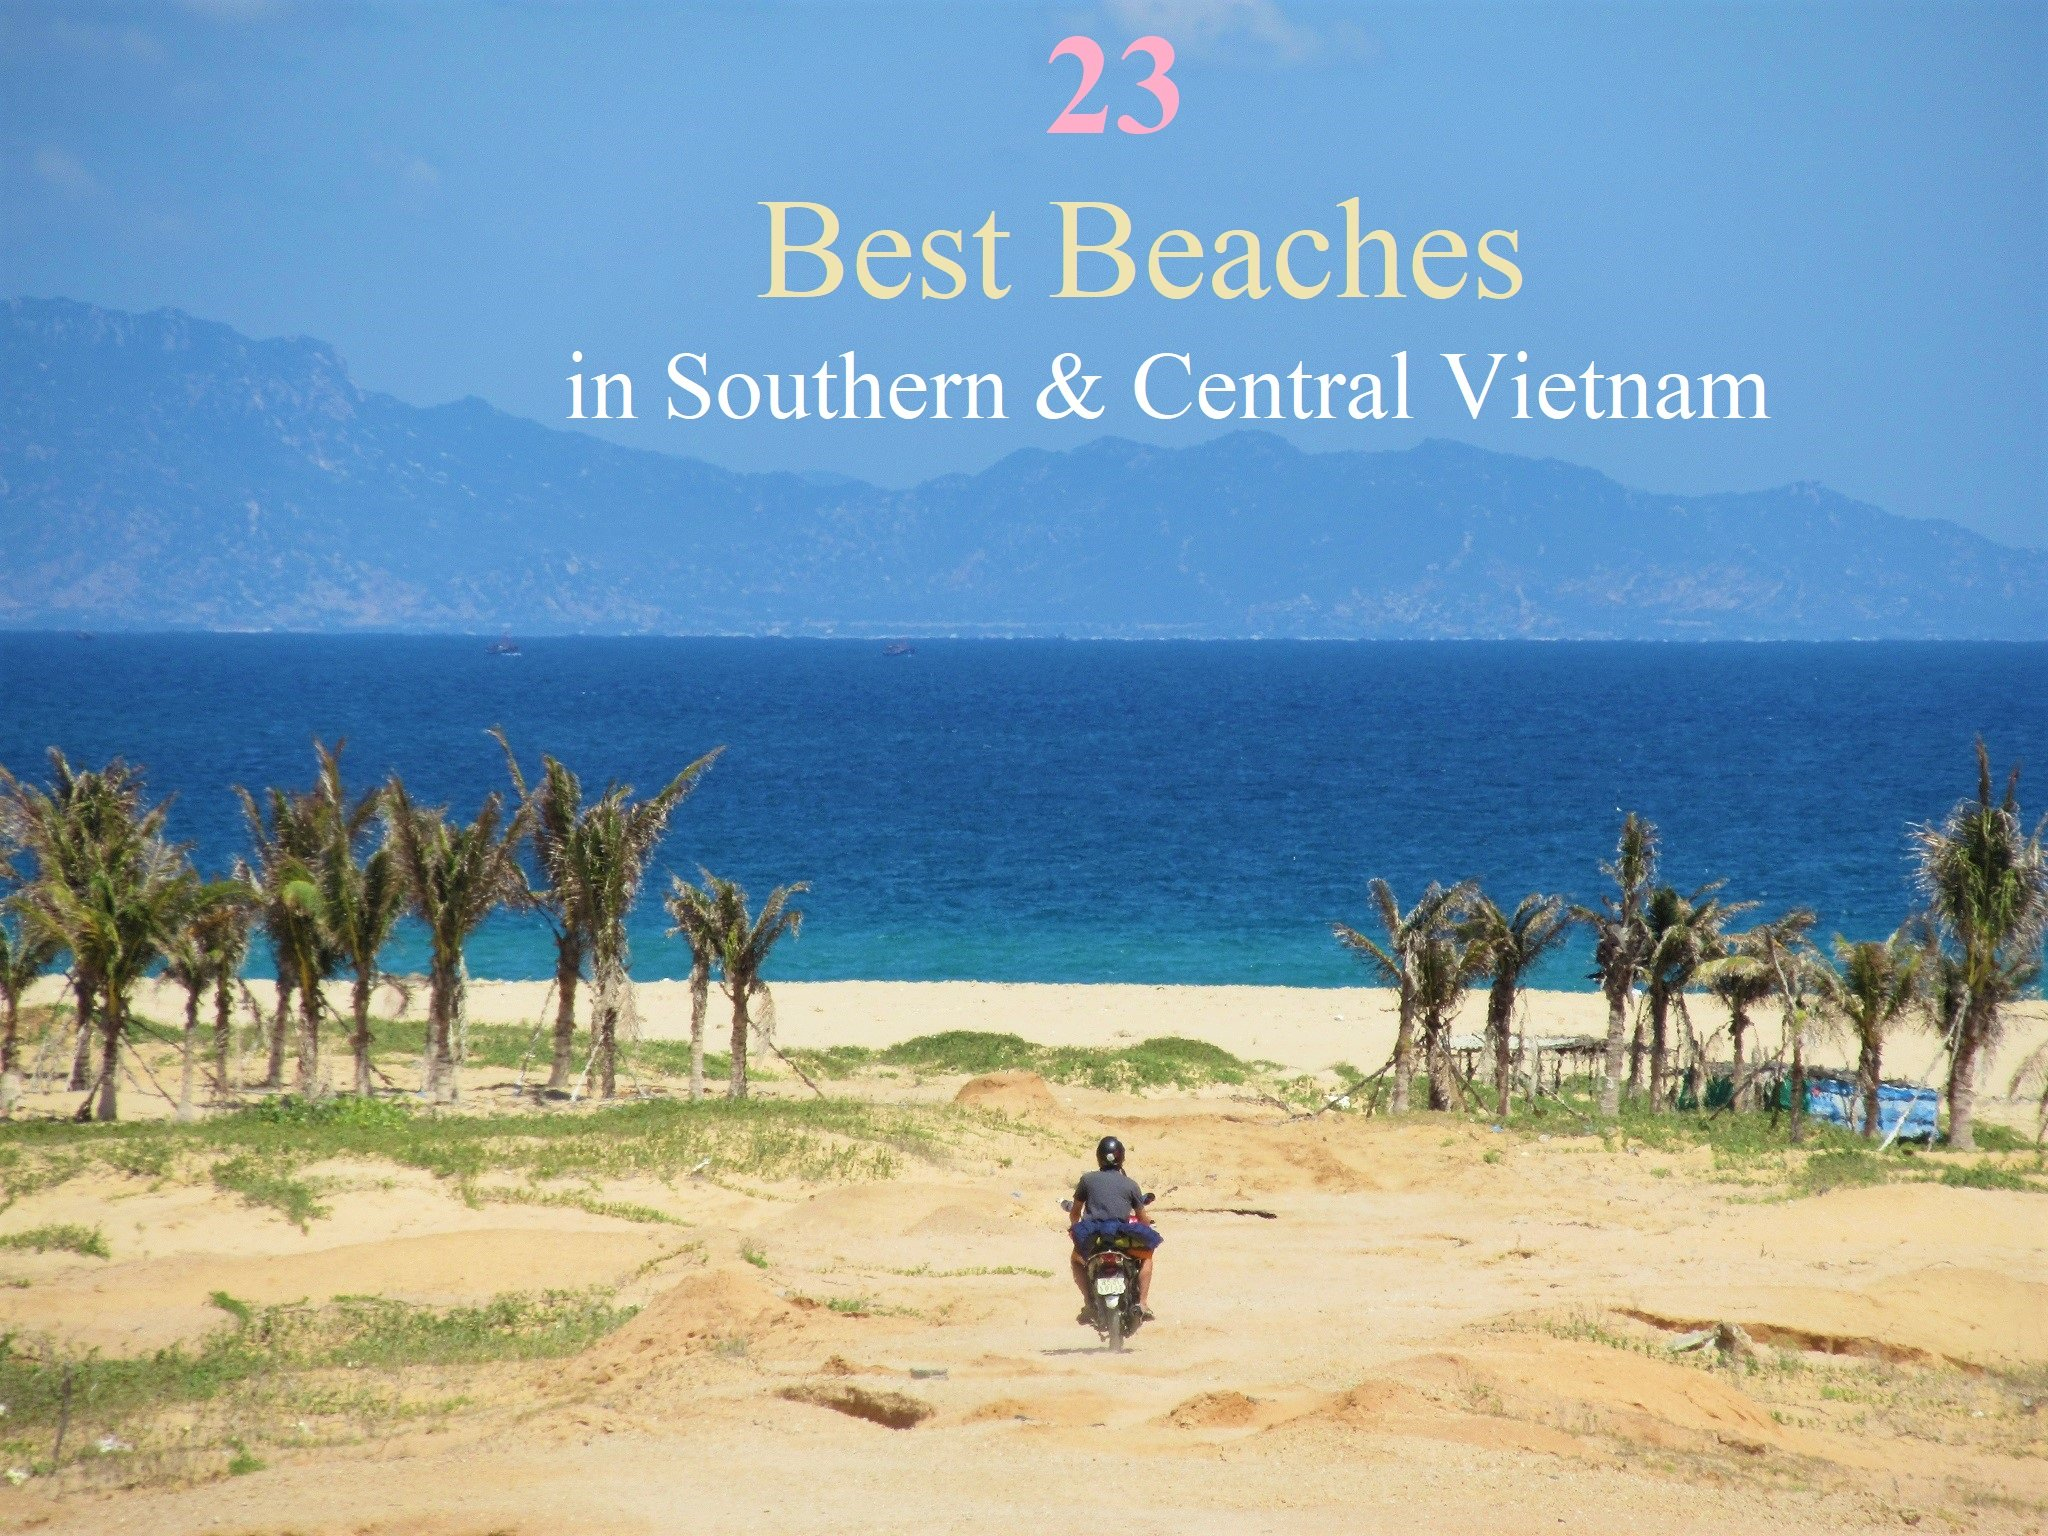 23 of the Best Beaches in Southern & Central Vietnam